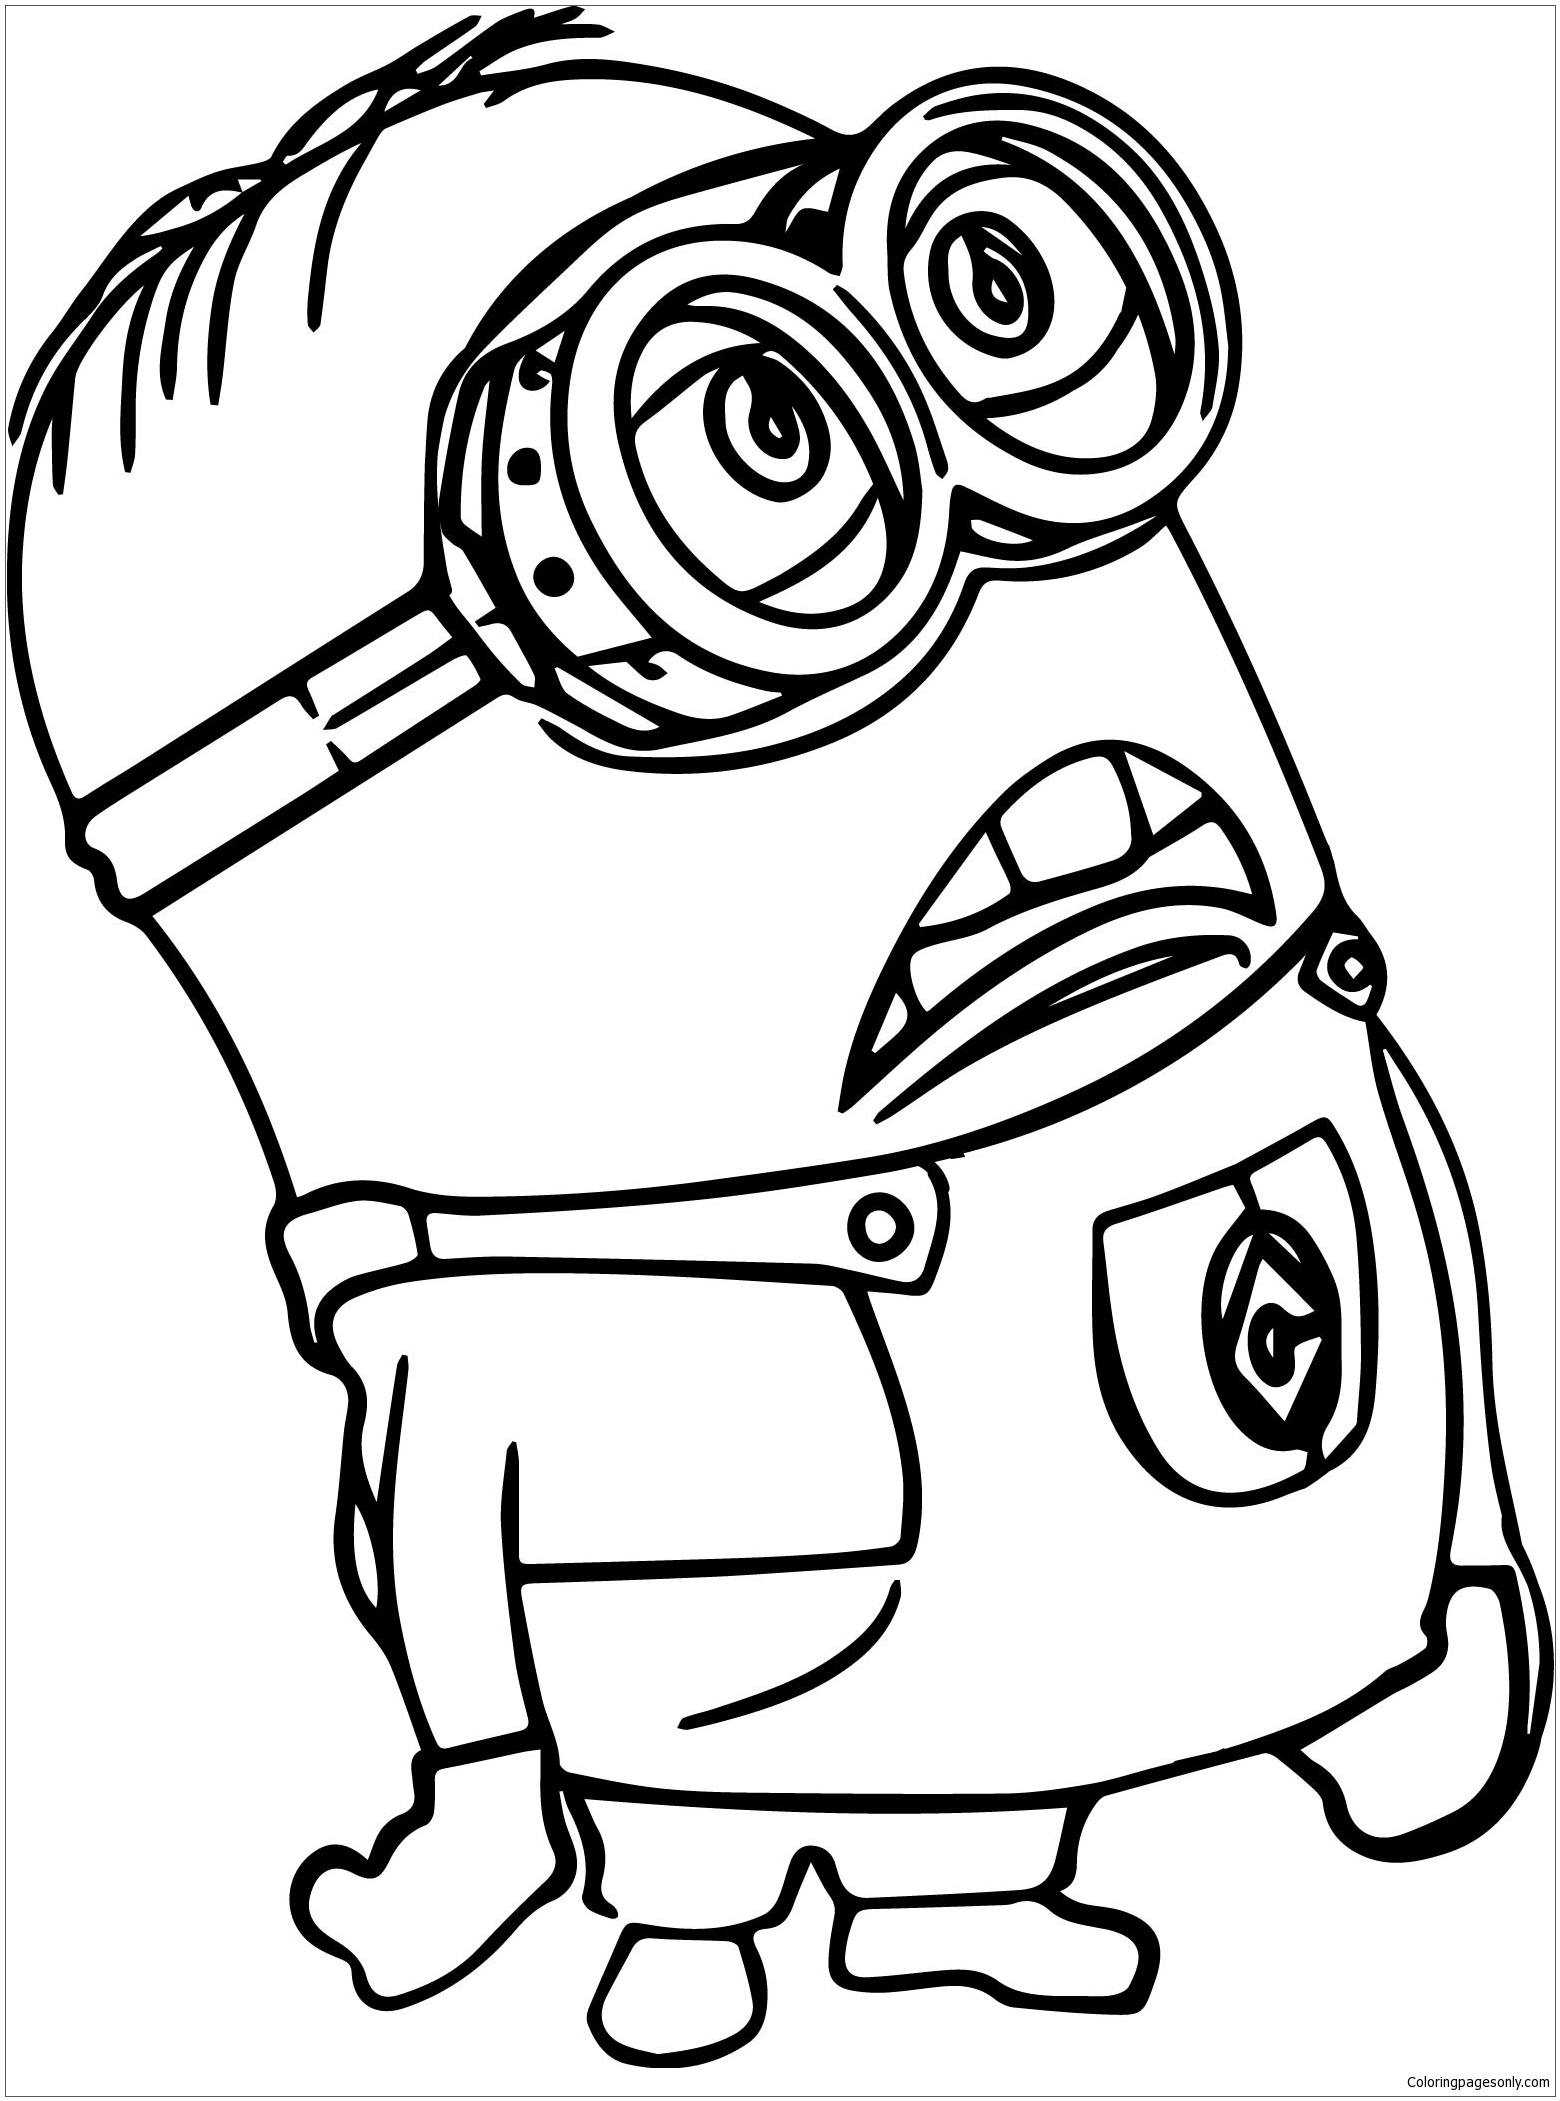 despicable me coloring pictures printable despicable me coloring pages for kids cool2bkids coloring pictures despicable me